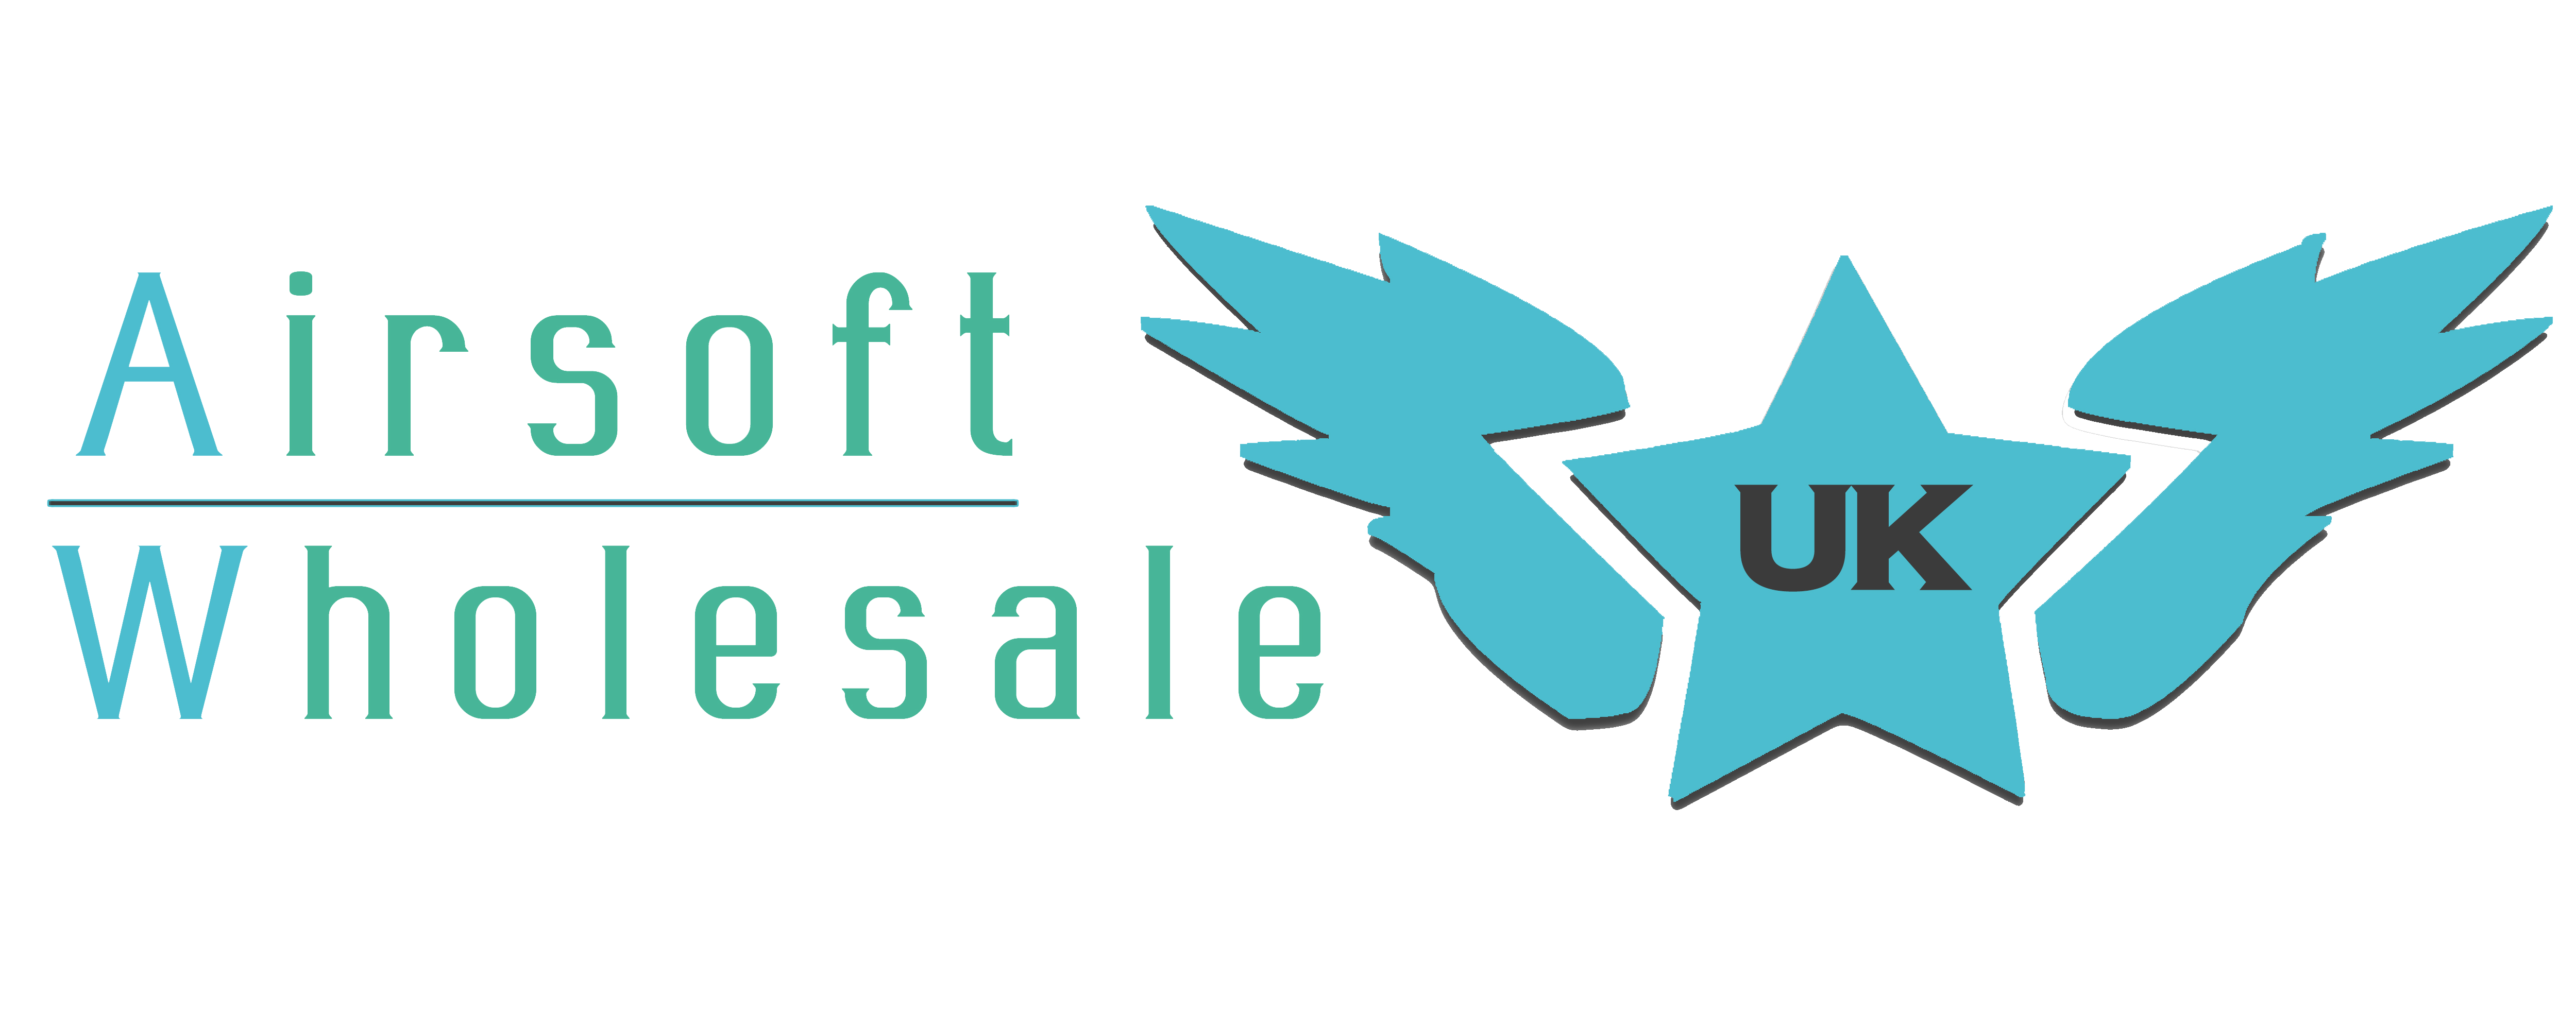 Airsoft Wholesale UK Blog